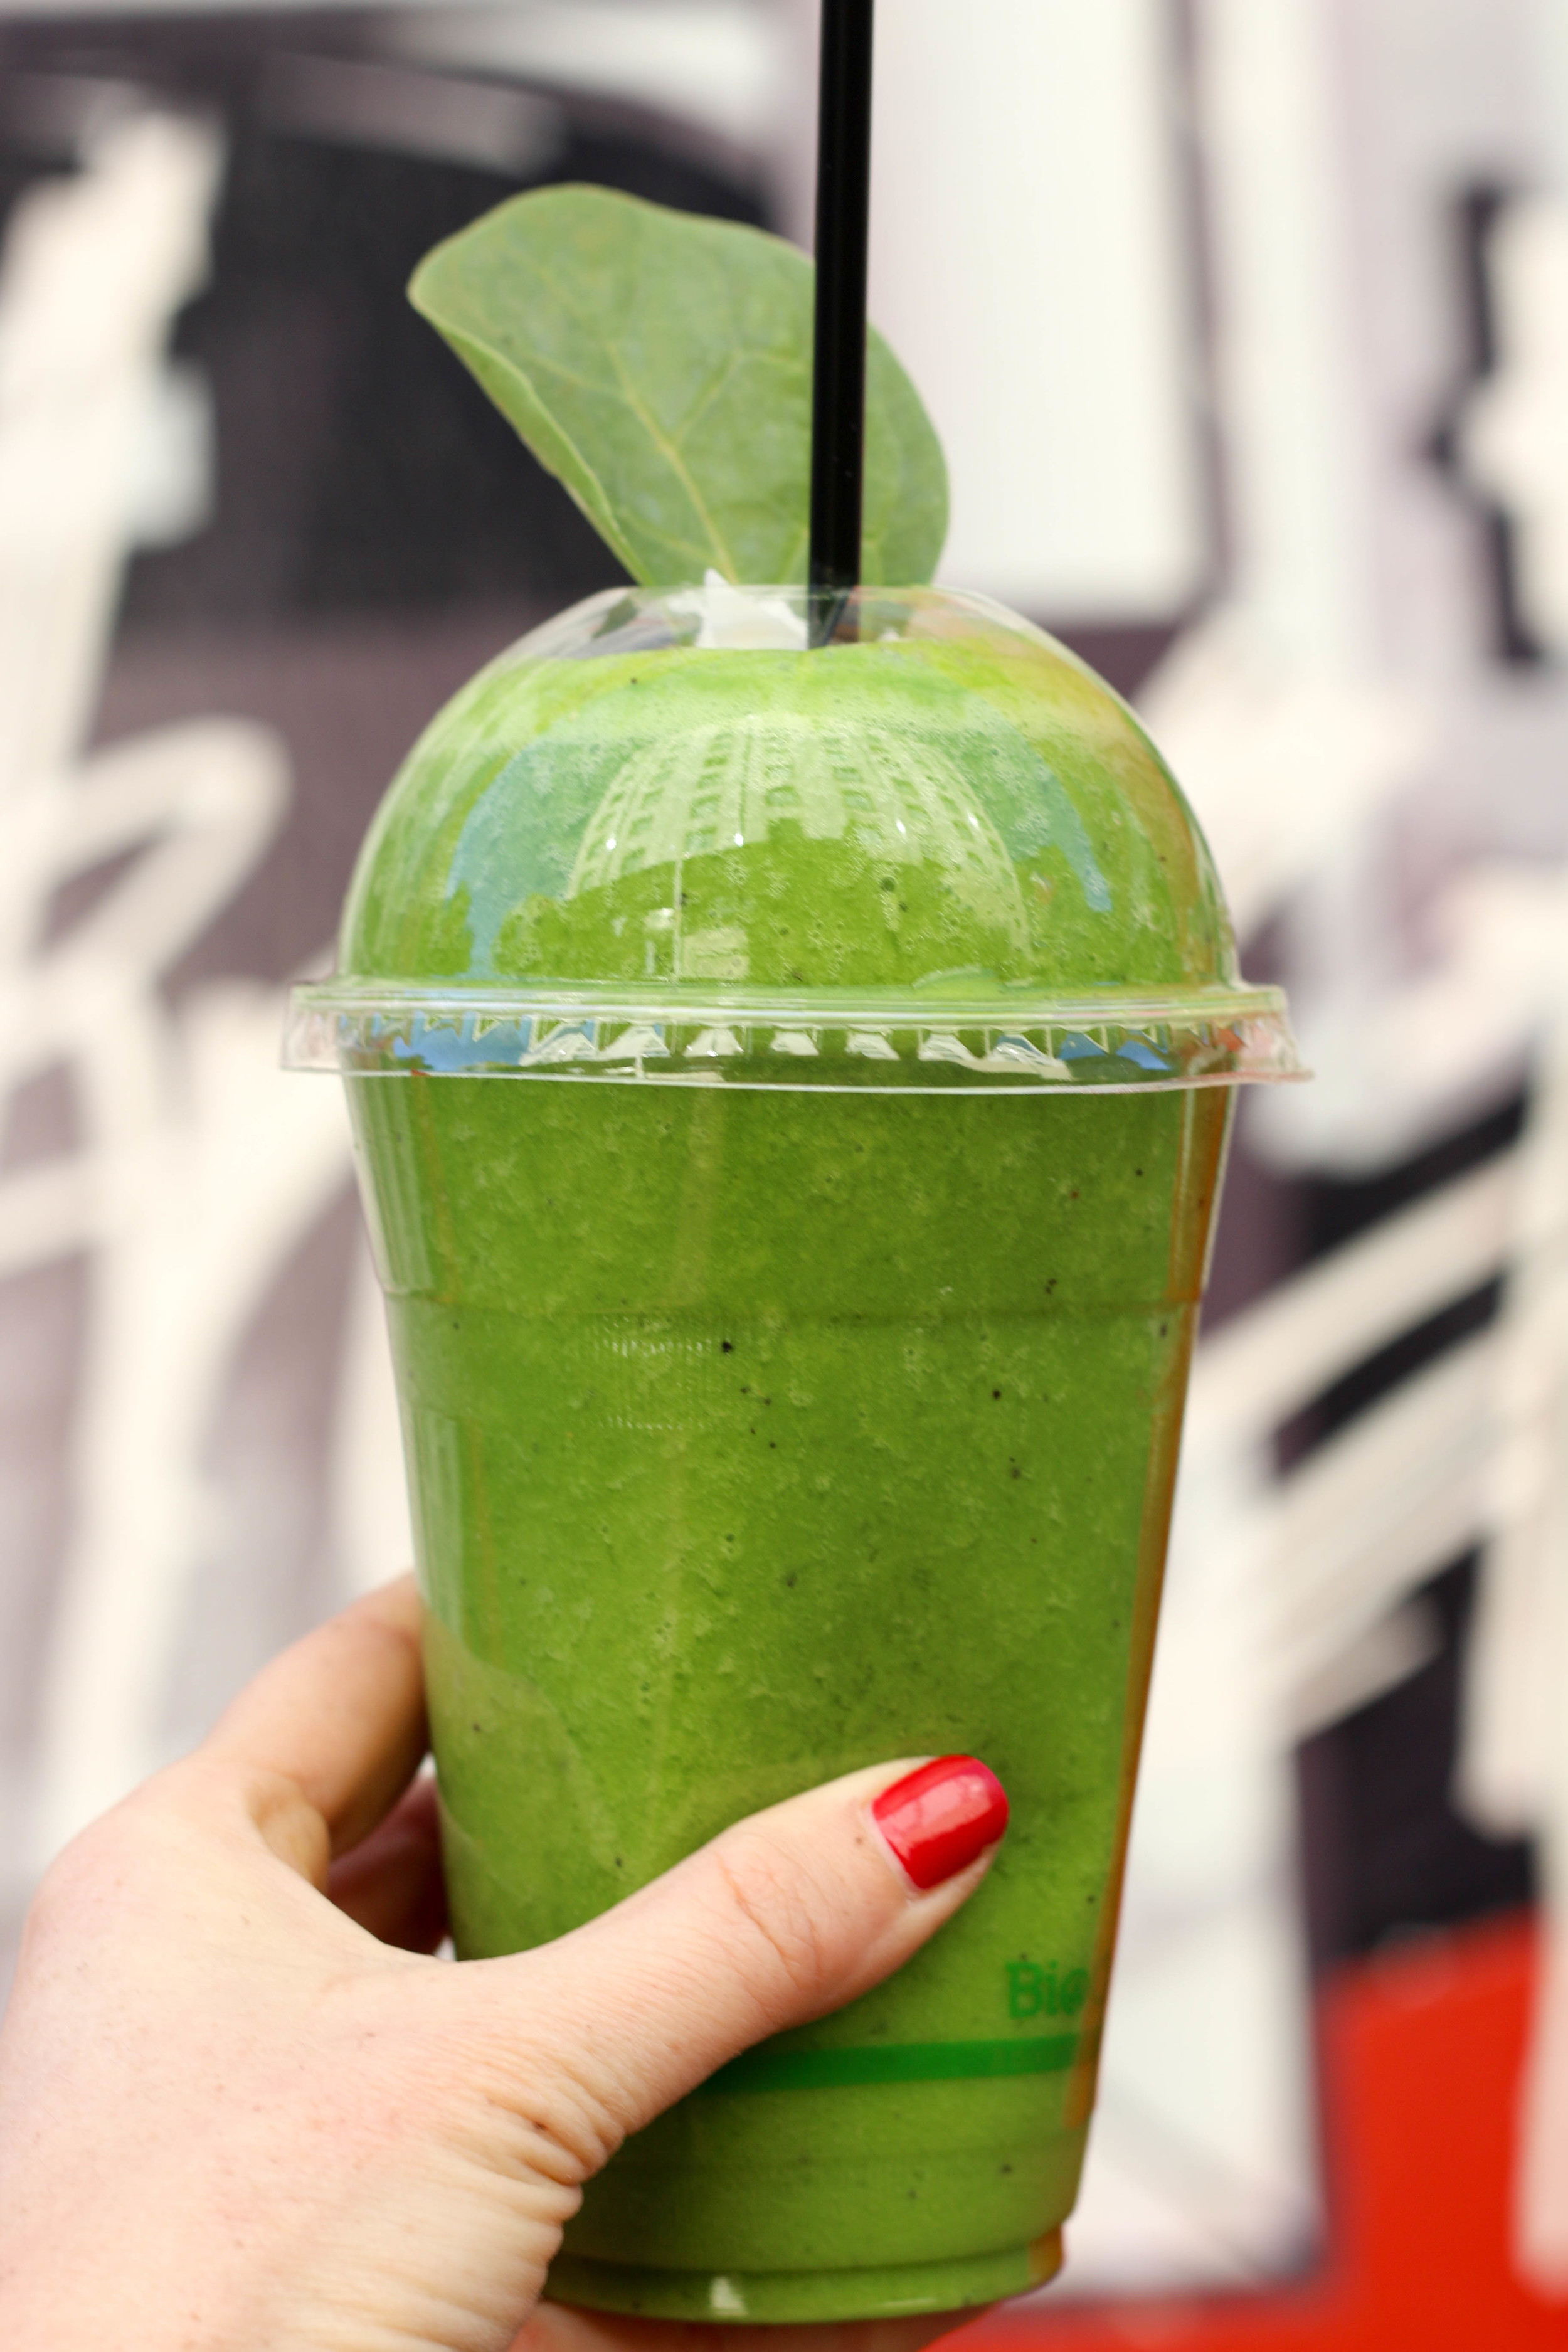 The Smiley Green vegan smoothie from The Wolf, The Bean, The Walnut